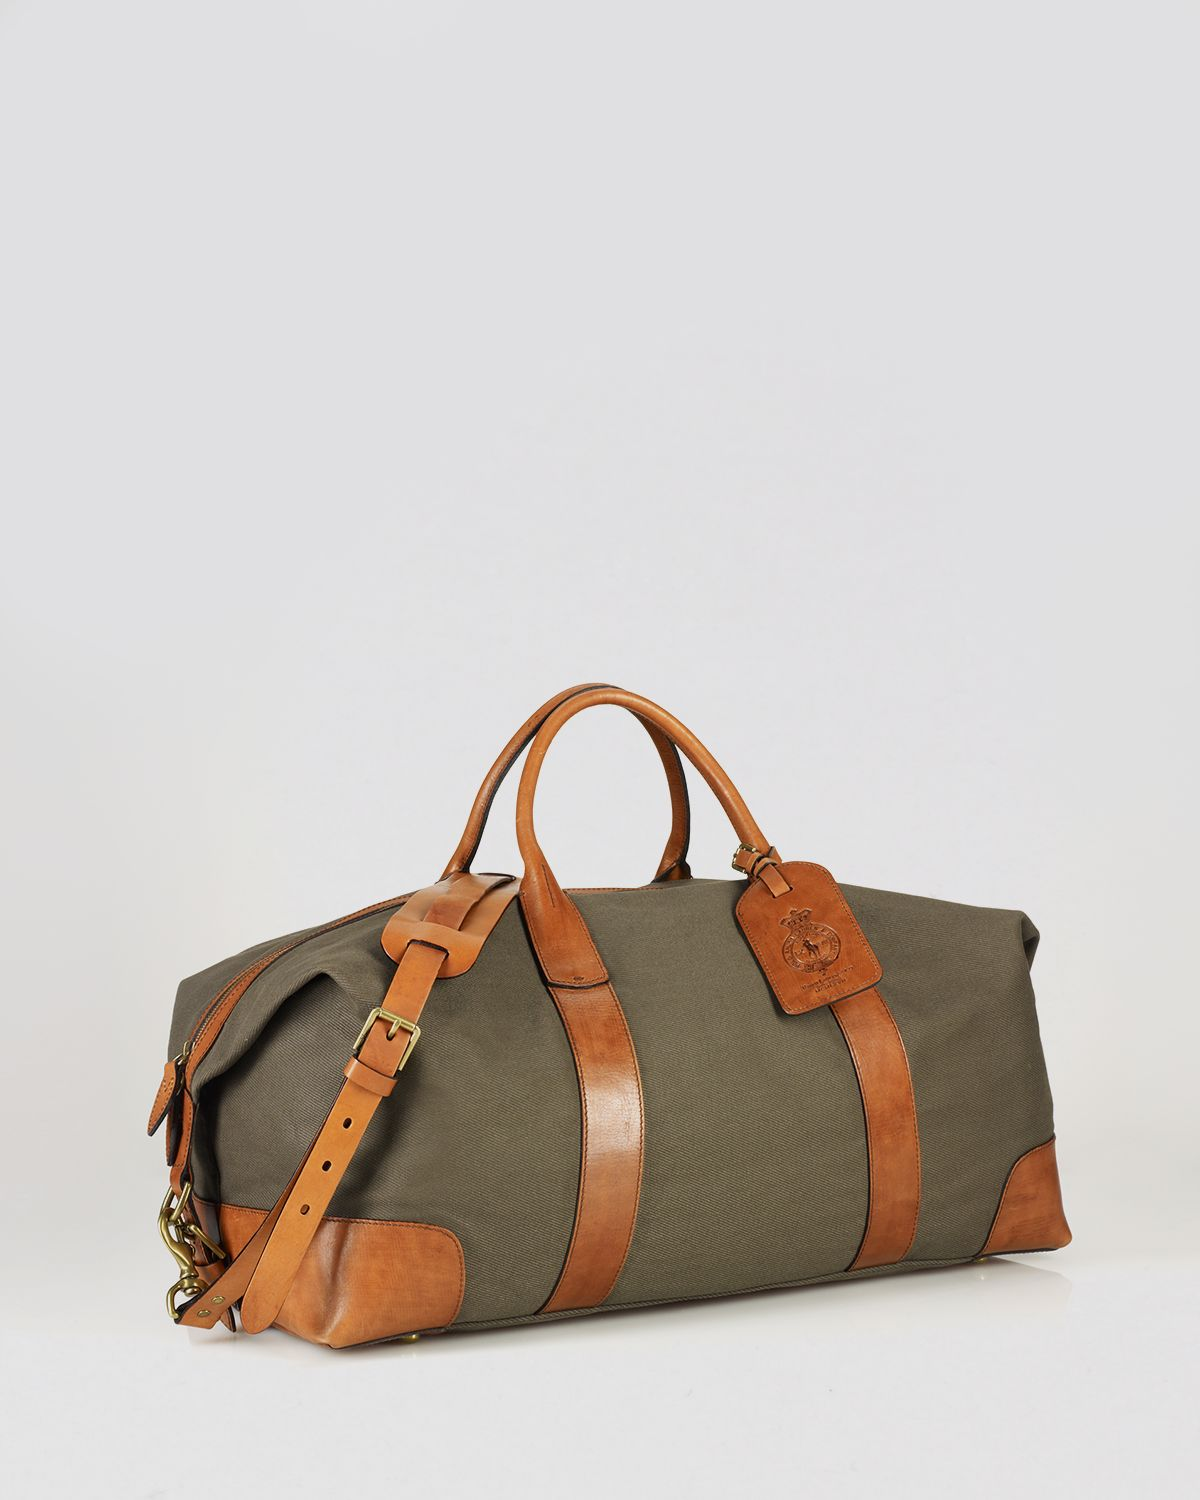 95340e95b0 Lyst - Ralph Lauren Polo Canvas   Leather Duffel Bag in Green for Men